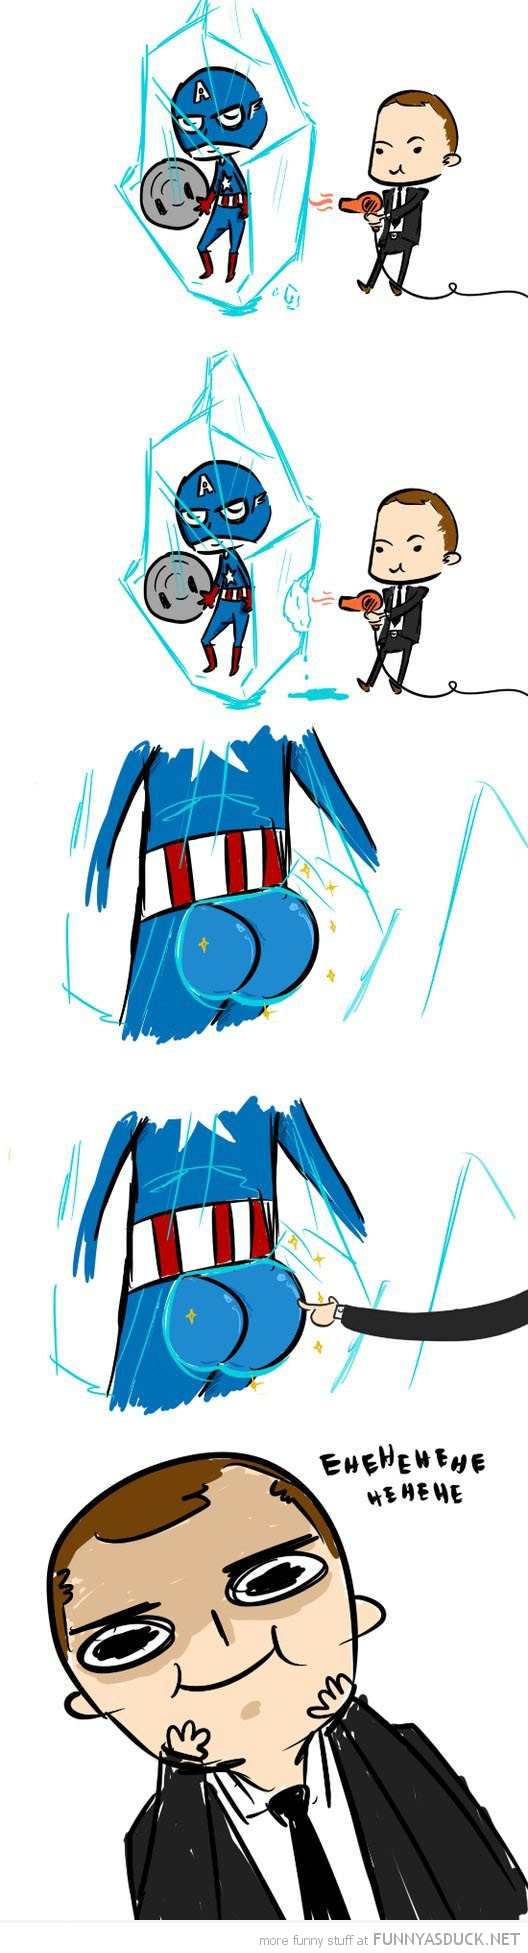 captain america comic frozen touch butt bum avengers funny pics pictures pic picture image photo images photos lol